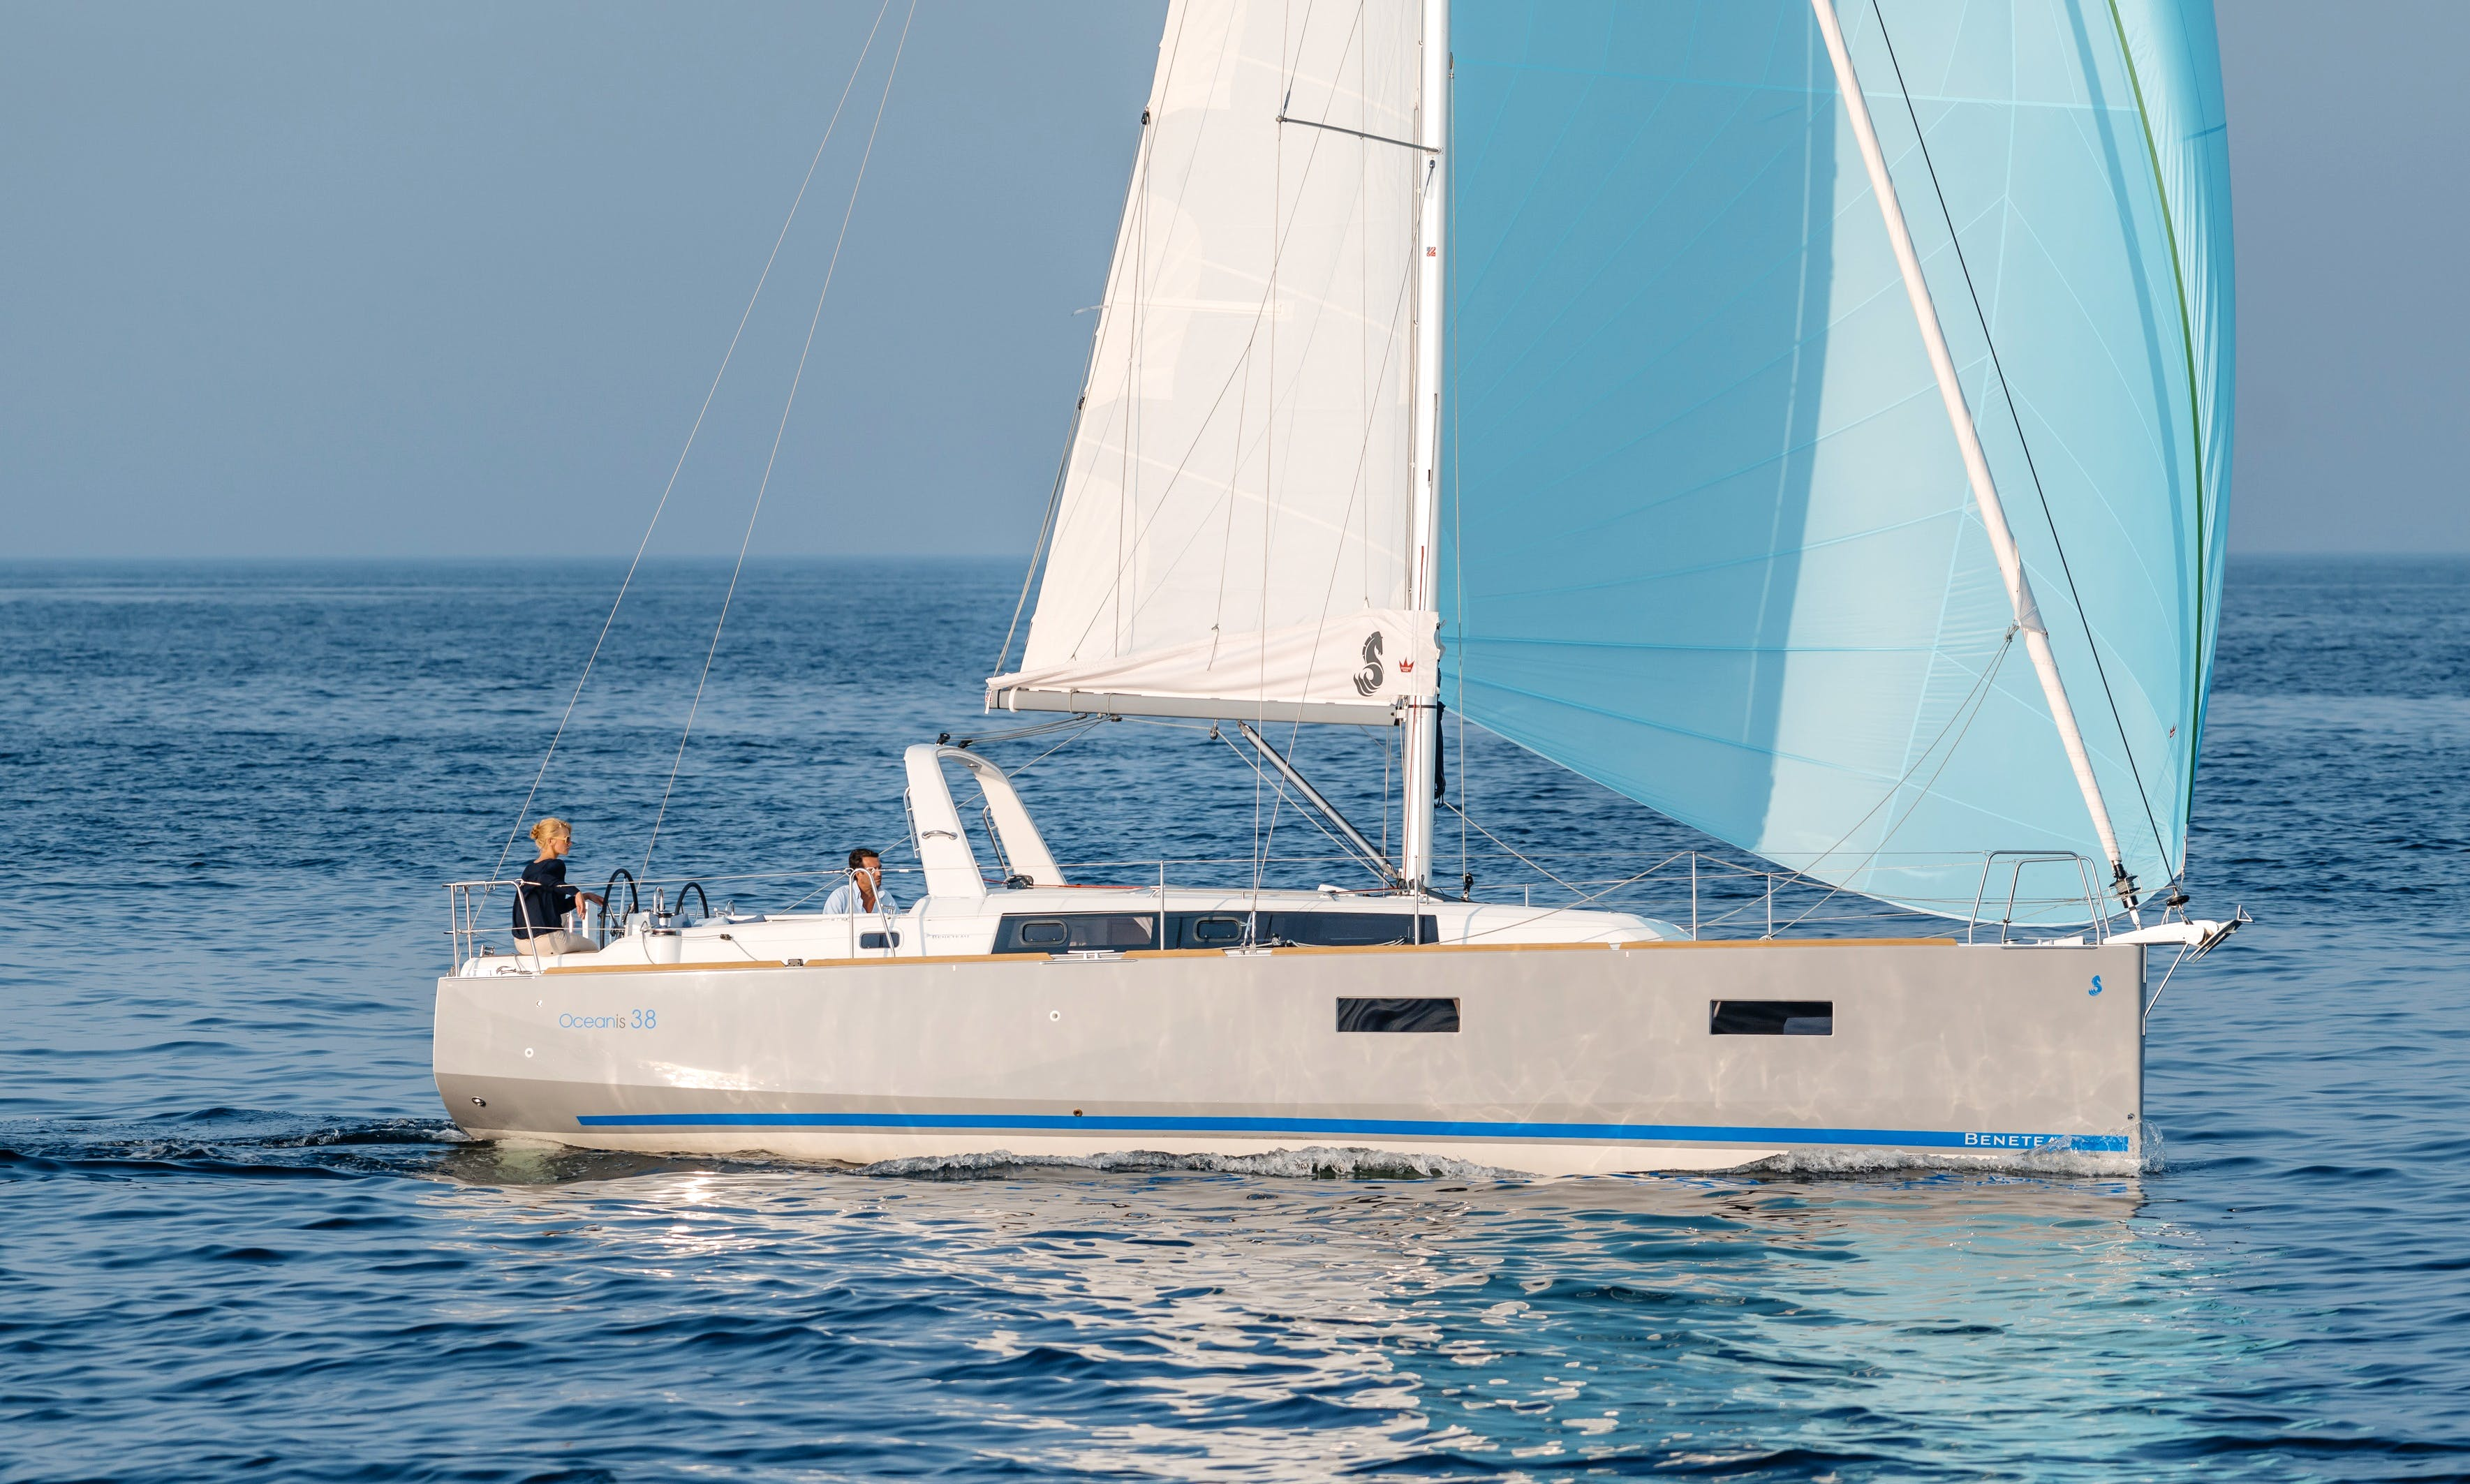 Charter this Beneteau Oceanis 38 Sailing Yacht in Barcelona, Spain